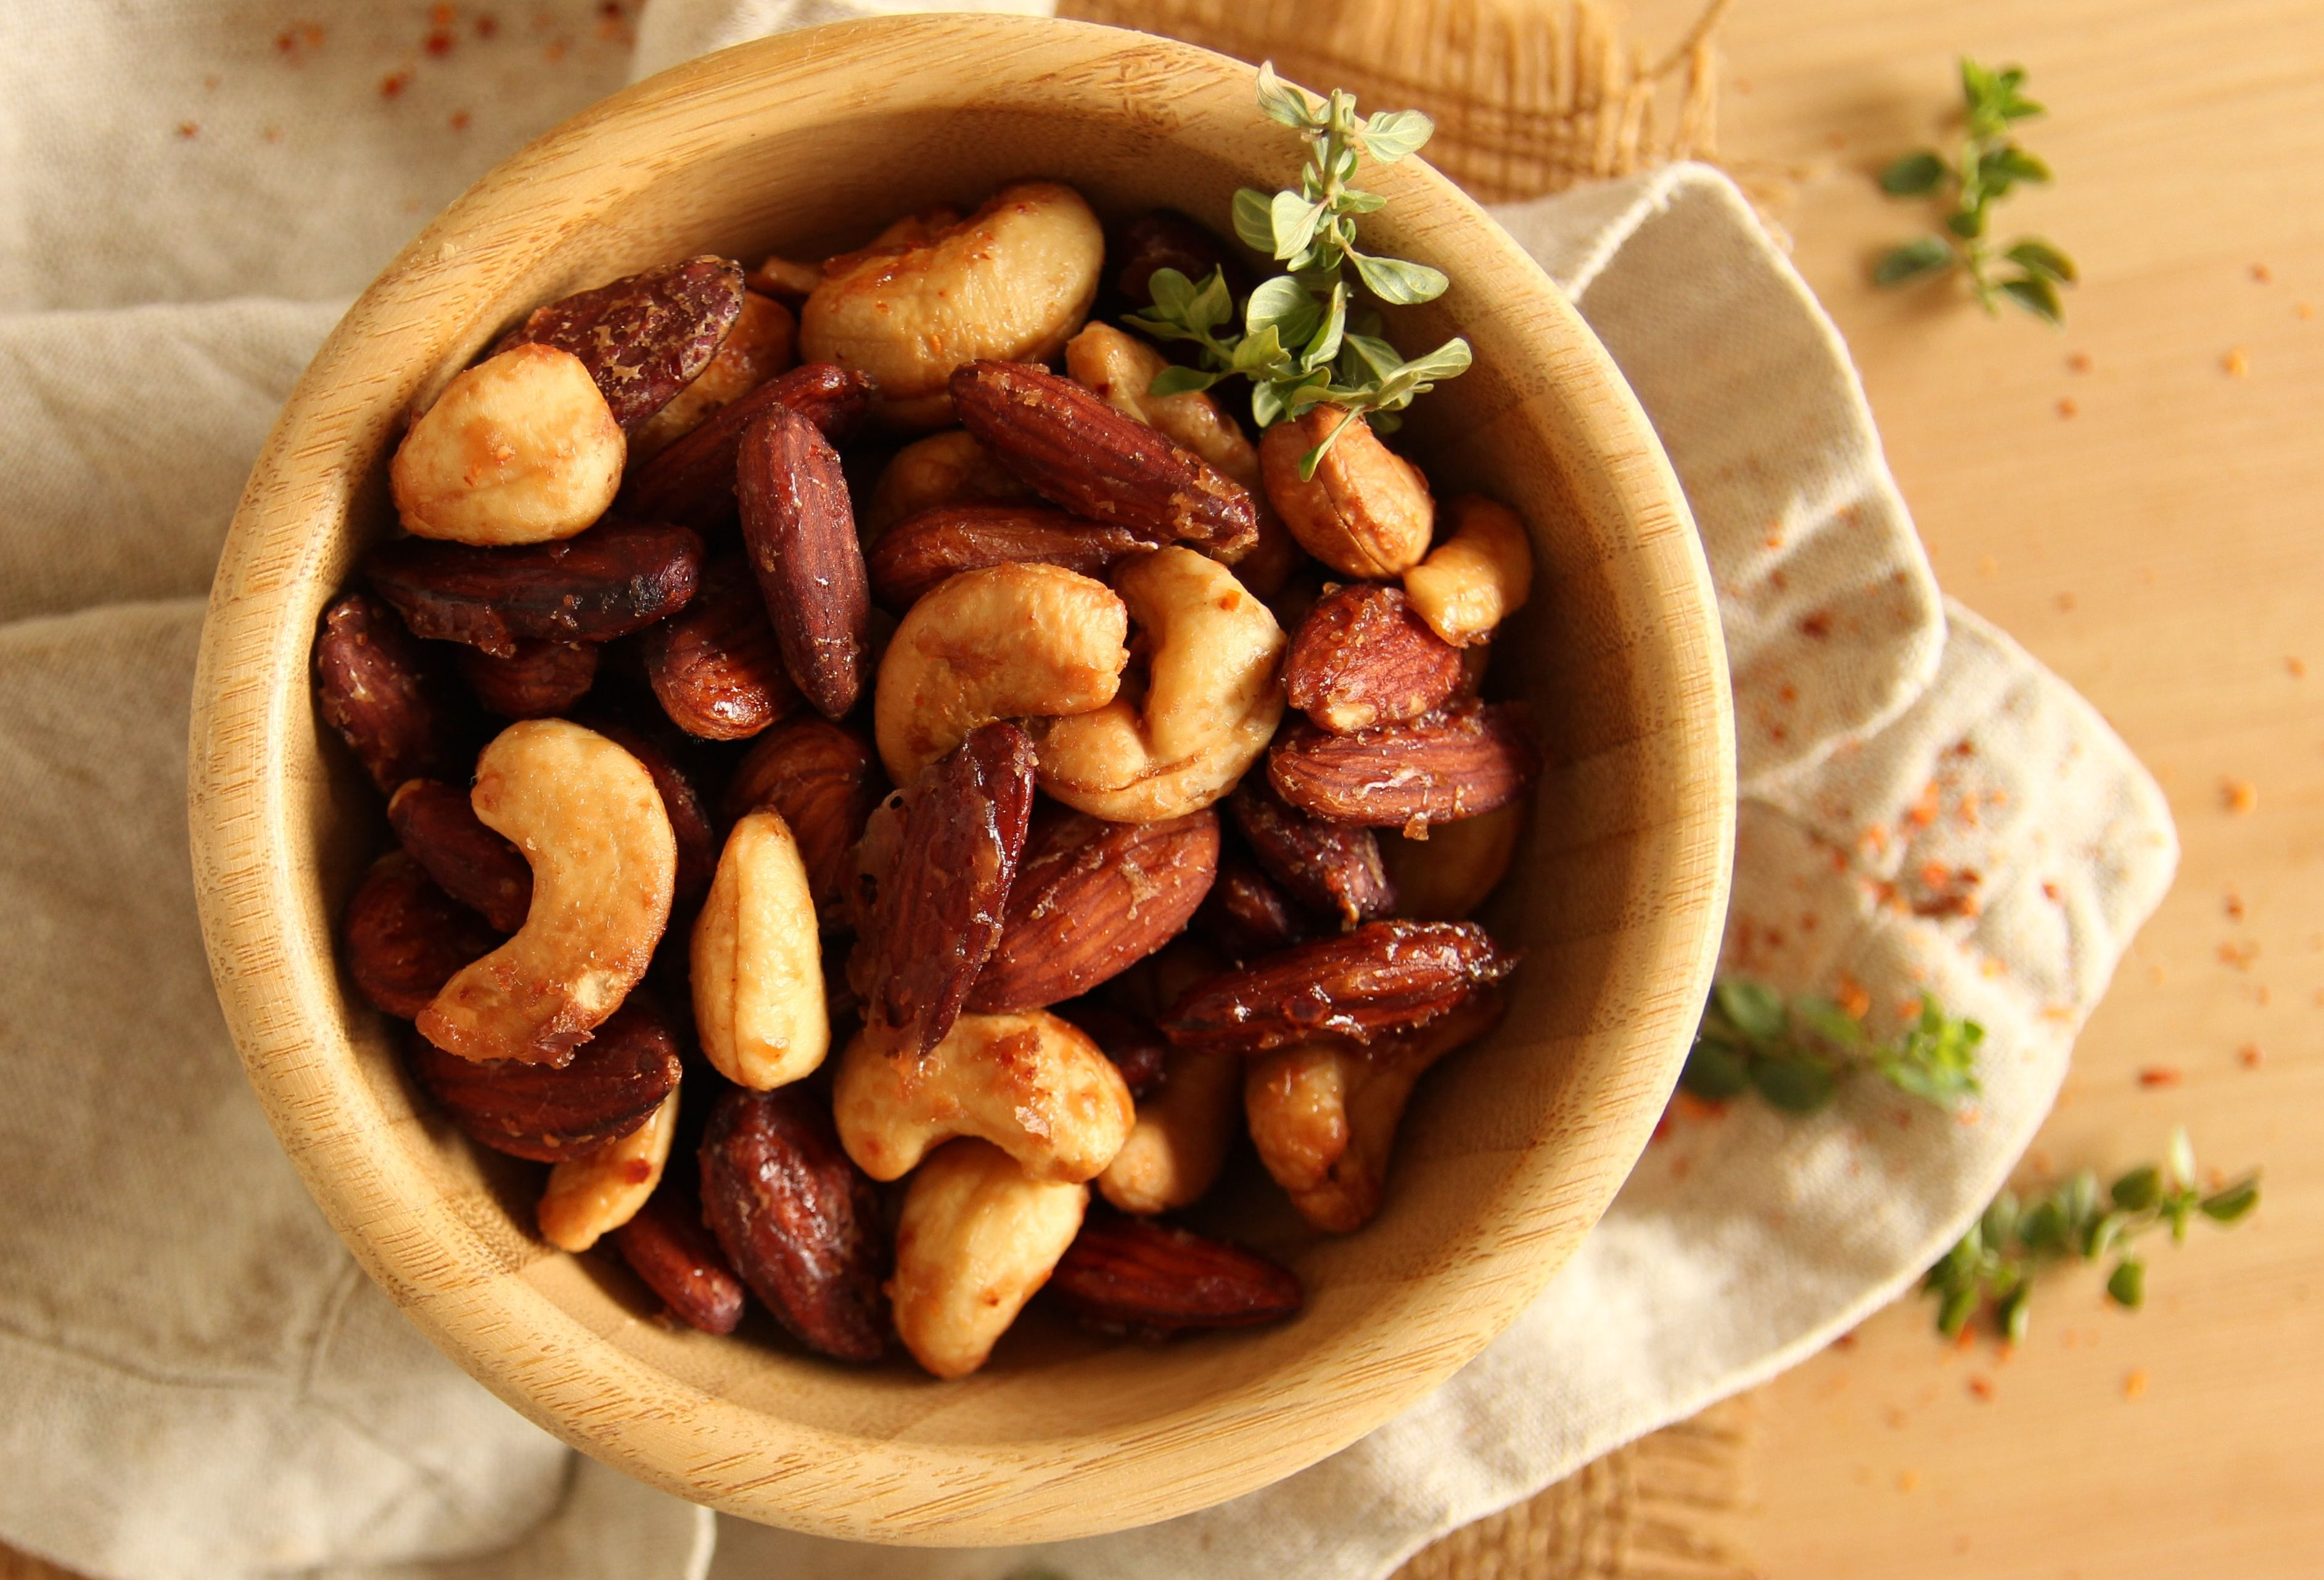 roasted nuts